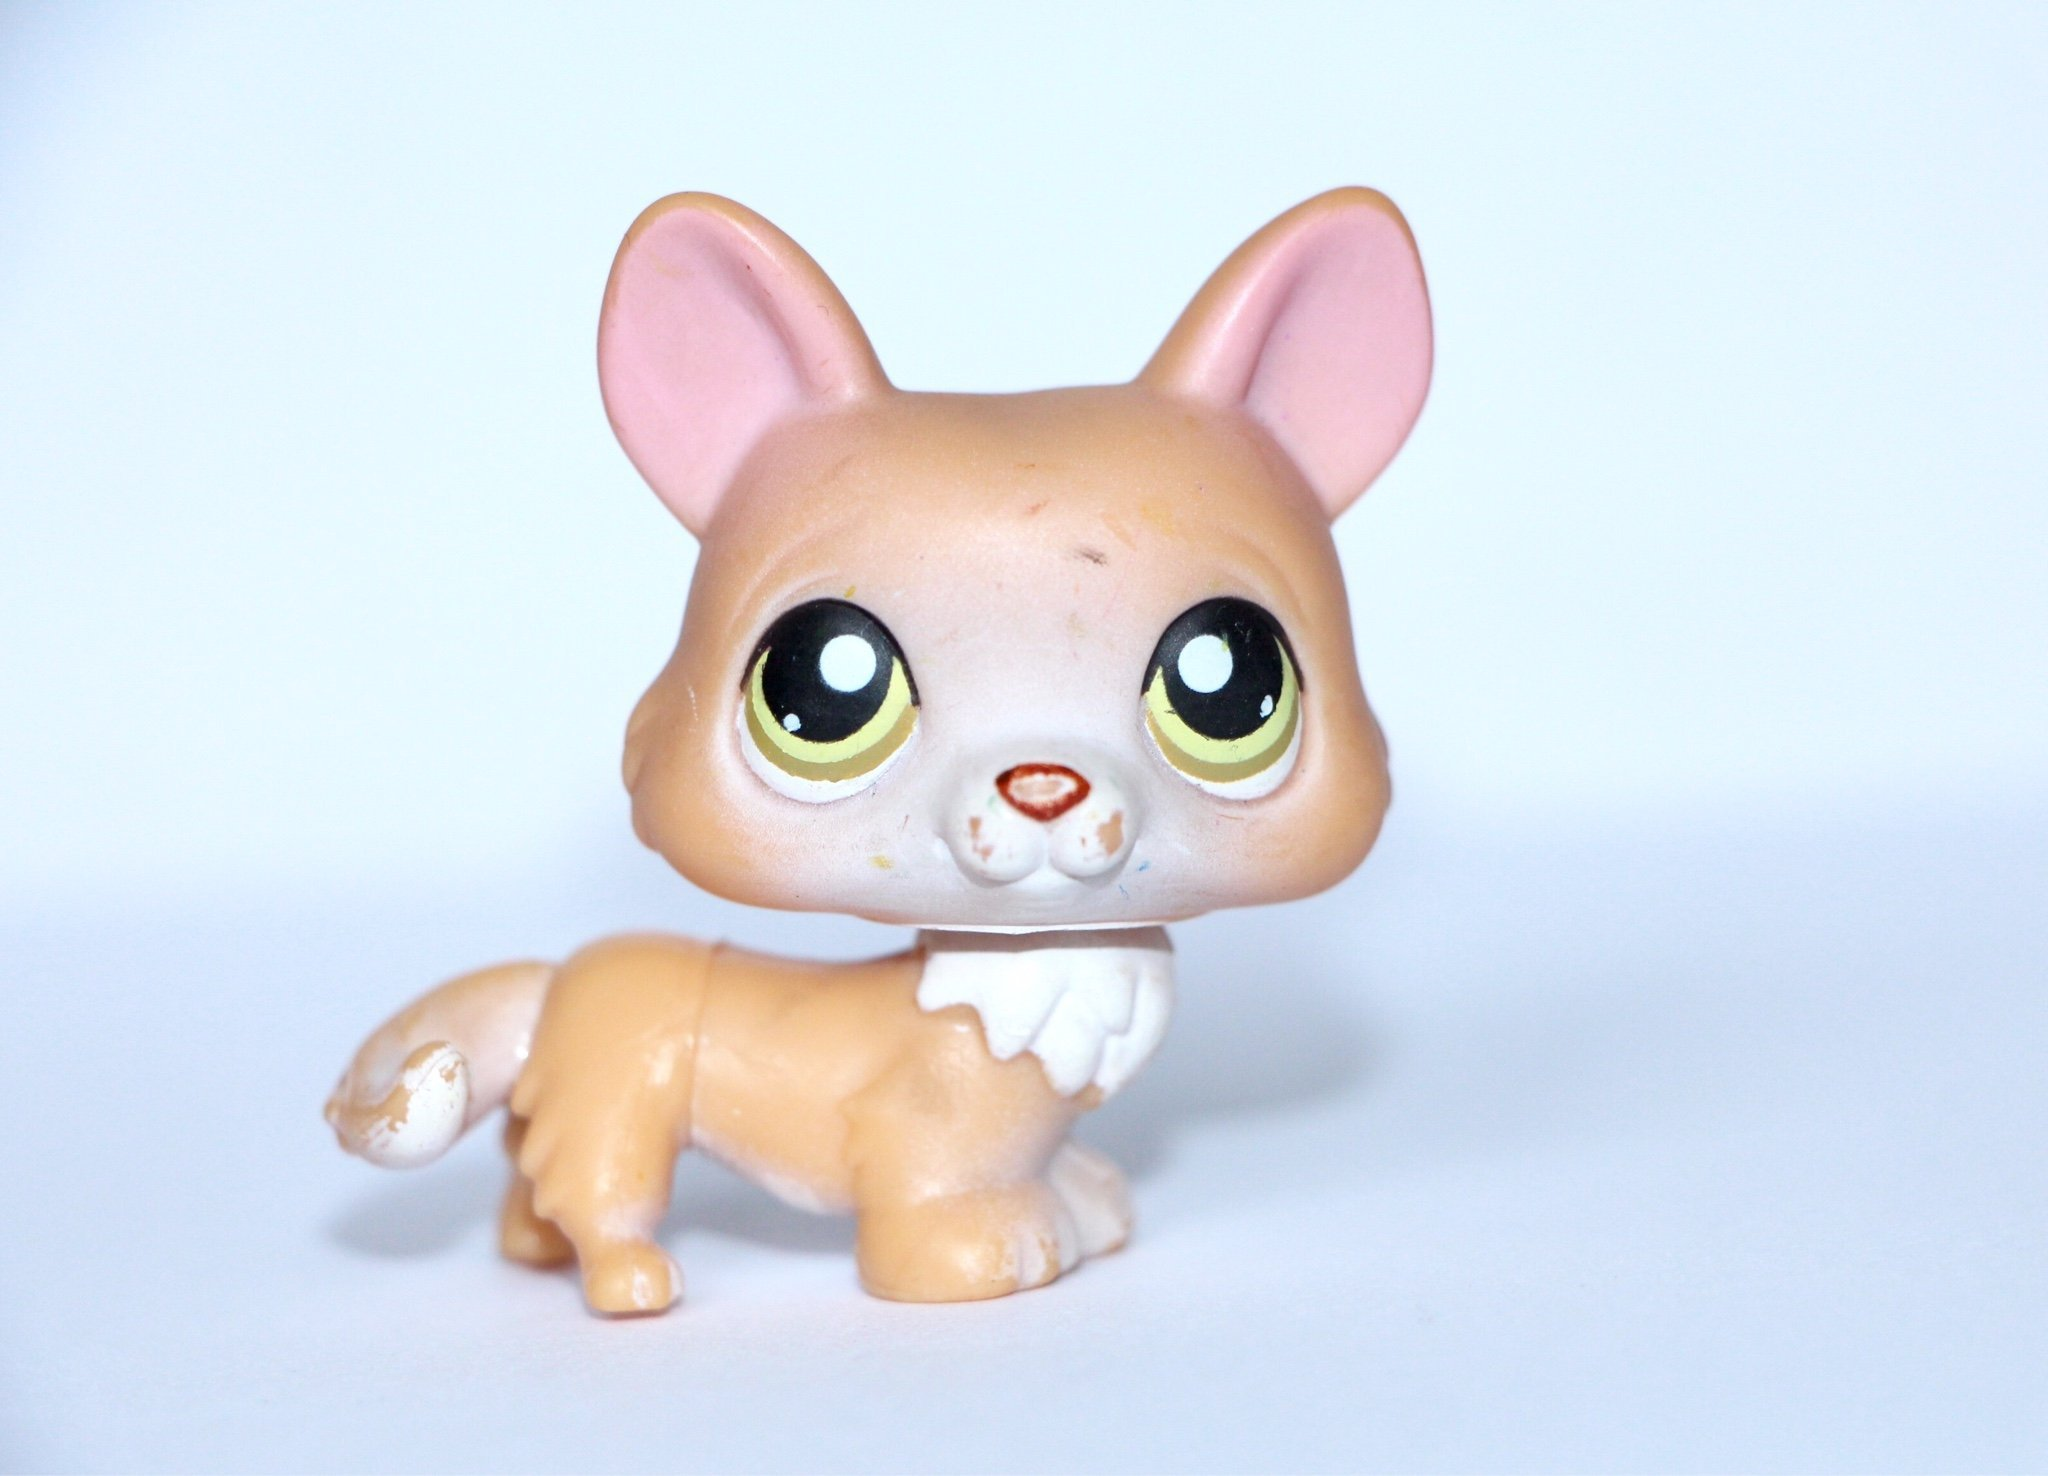 Hund - Littlest Pet Shop, Petshop, Pet shops, Petshops, Lps